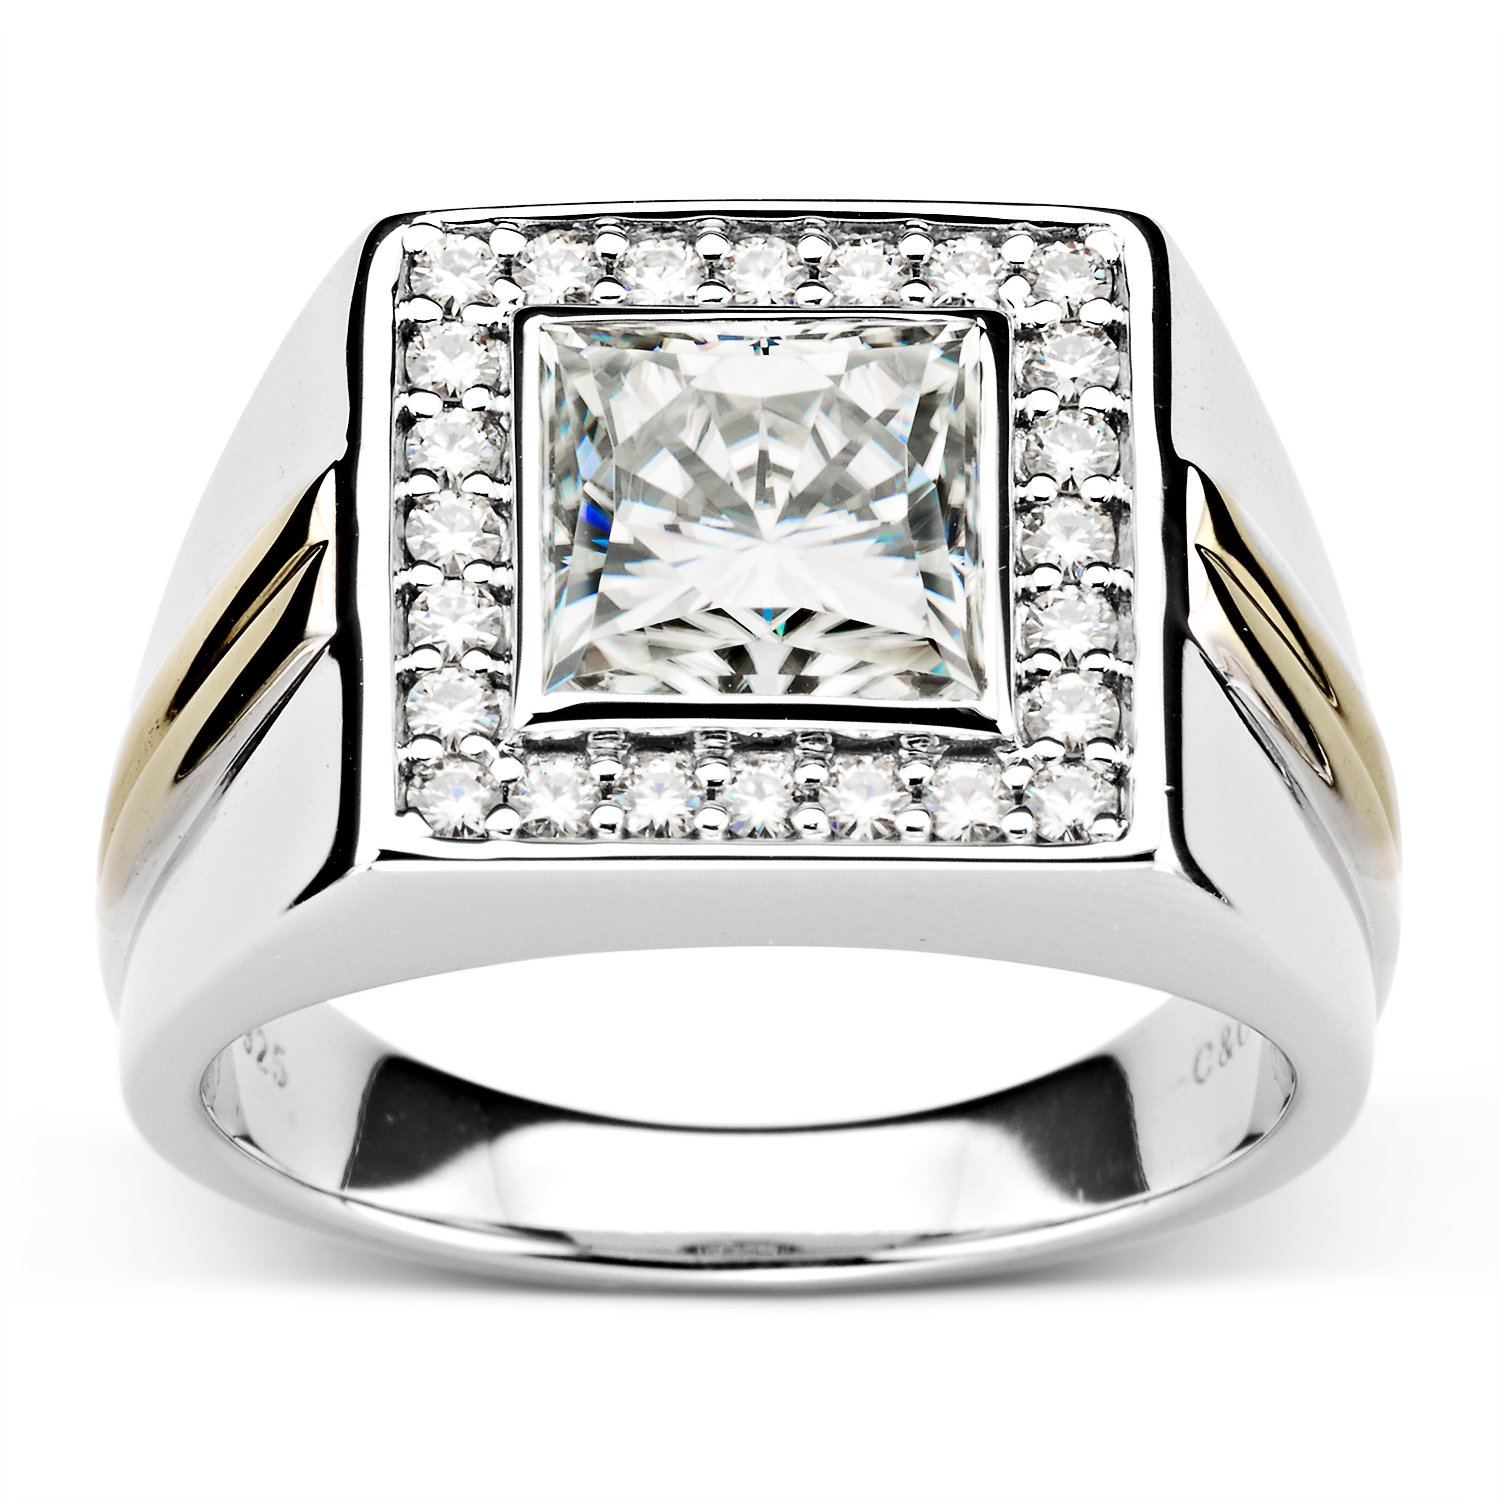 Forever Classic Mens 8.0mm Square Cut Moissanite Ring-size 12, 3.58cttw DEW By Charles & Colvard